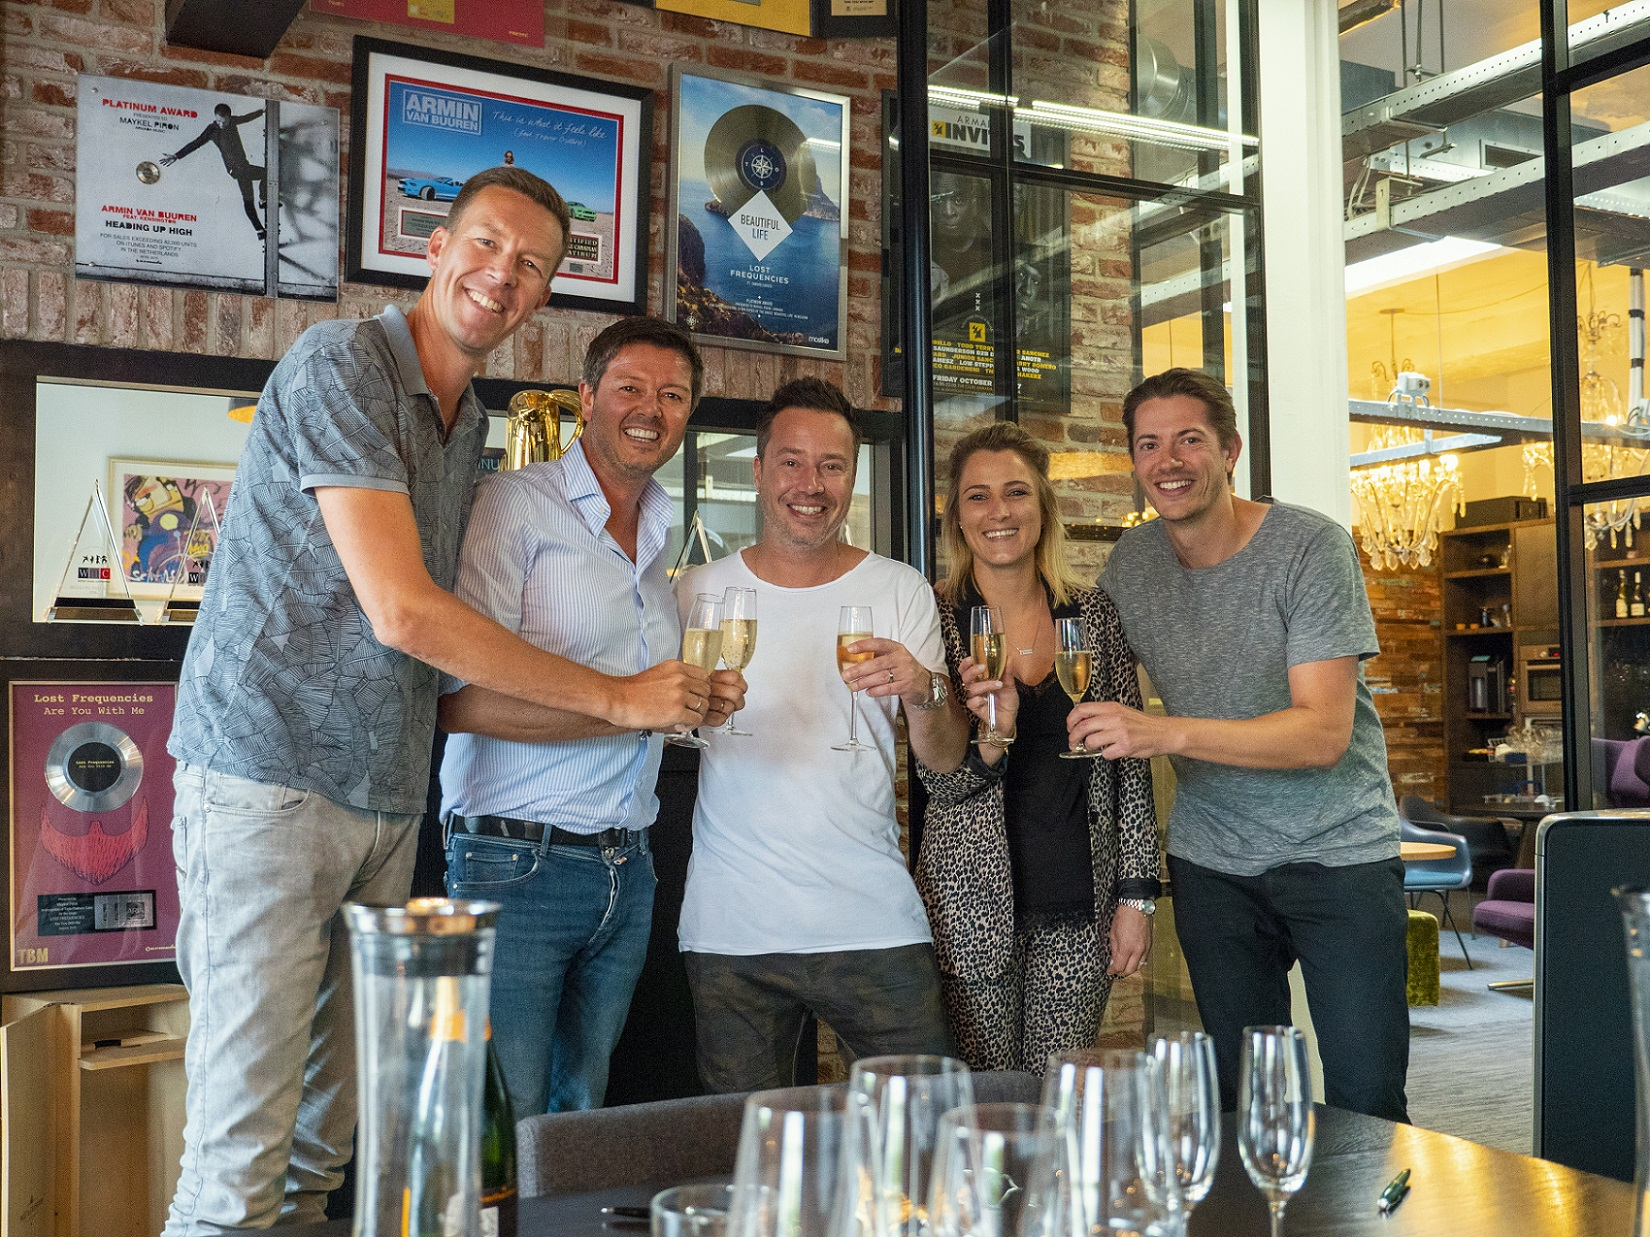 Sander van Doorn signs with Armada publishing